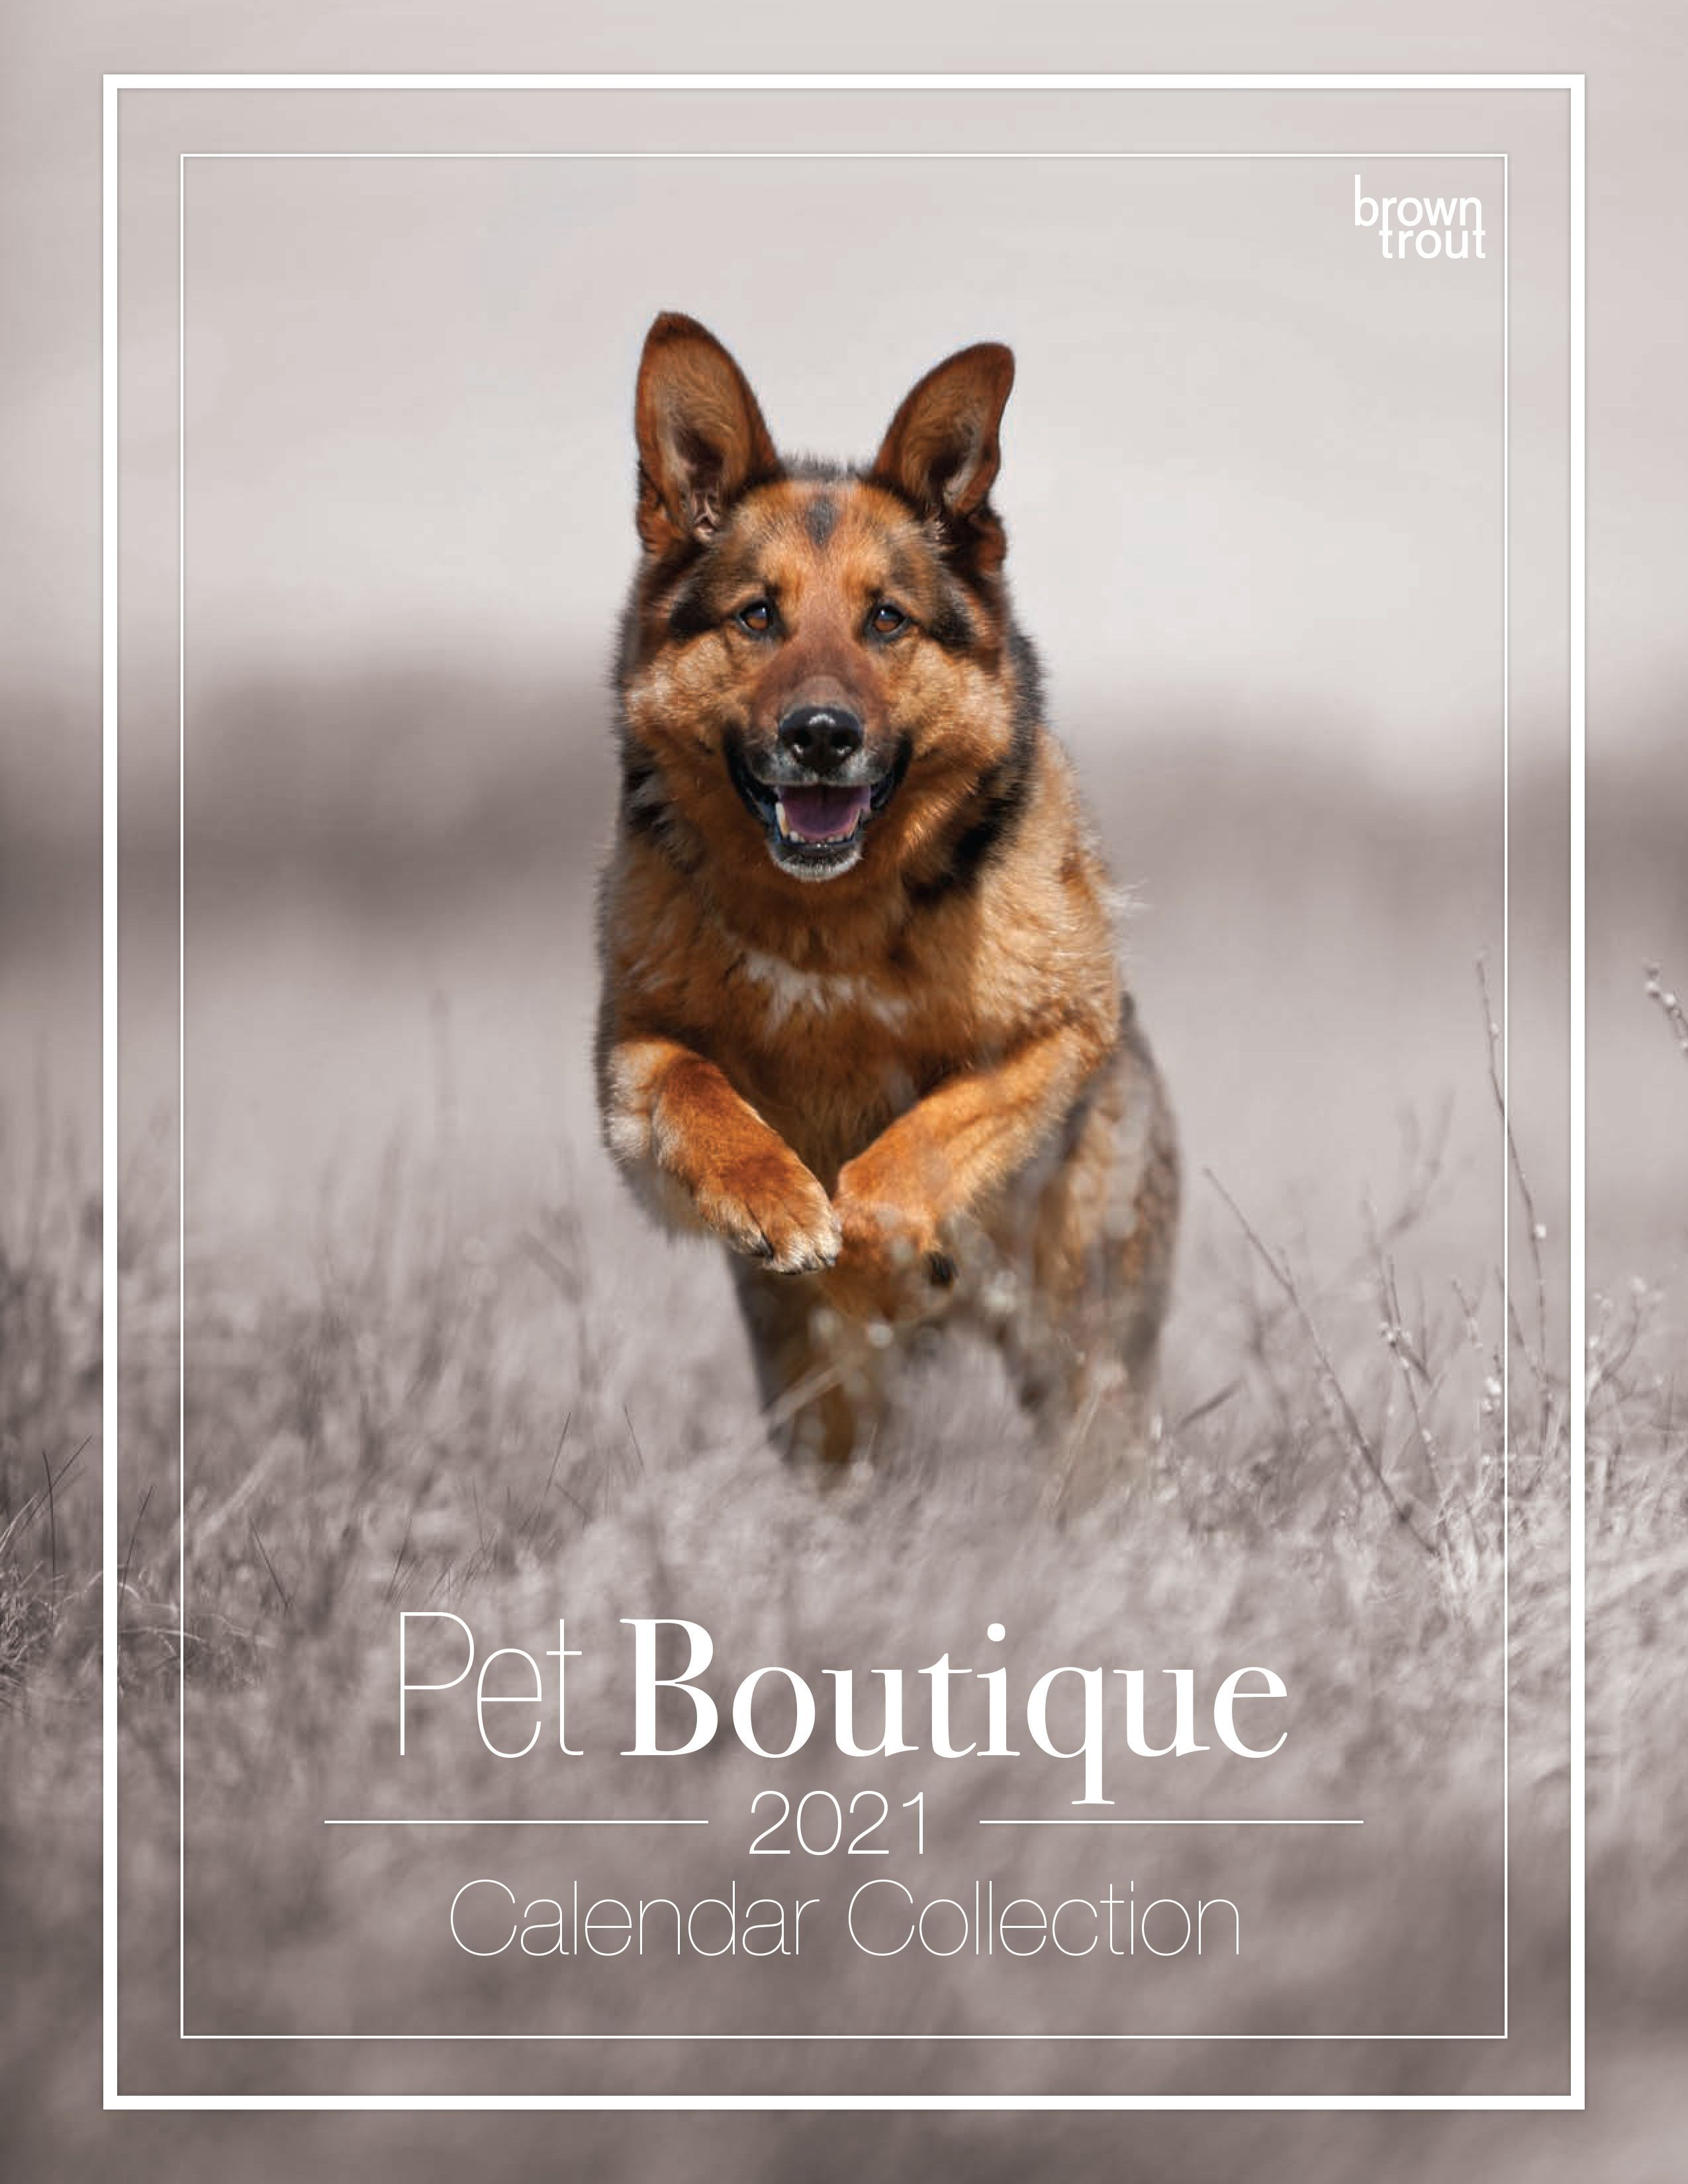 #2021 BrownTrout #pets #calendars are here. Check out our new catalog and order your copy now! #Dog lovers, don't miss our special #DogDays application! Download it to your device and you and your furry friend never have to be apart!